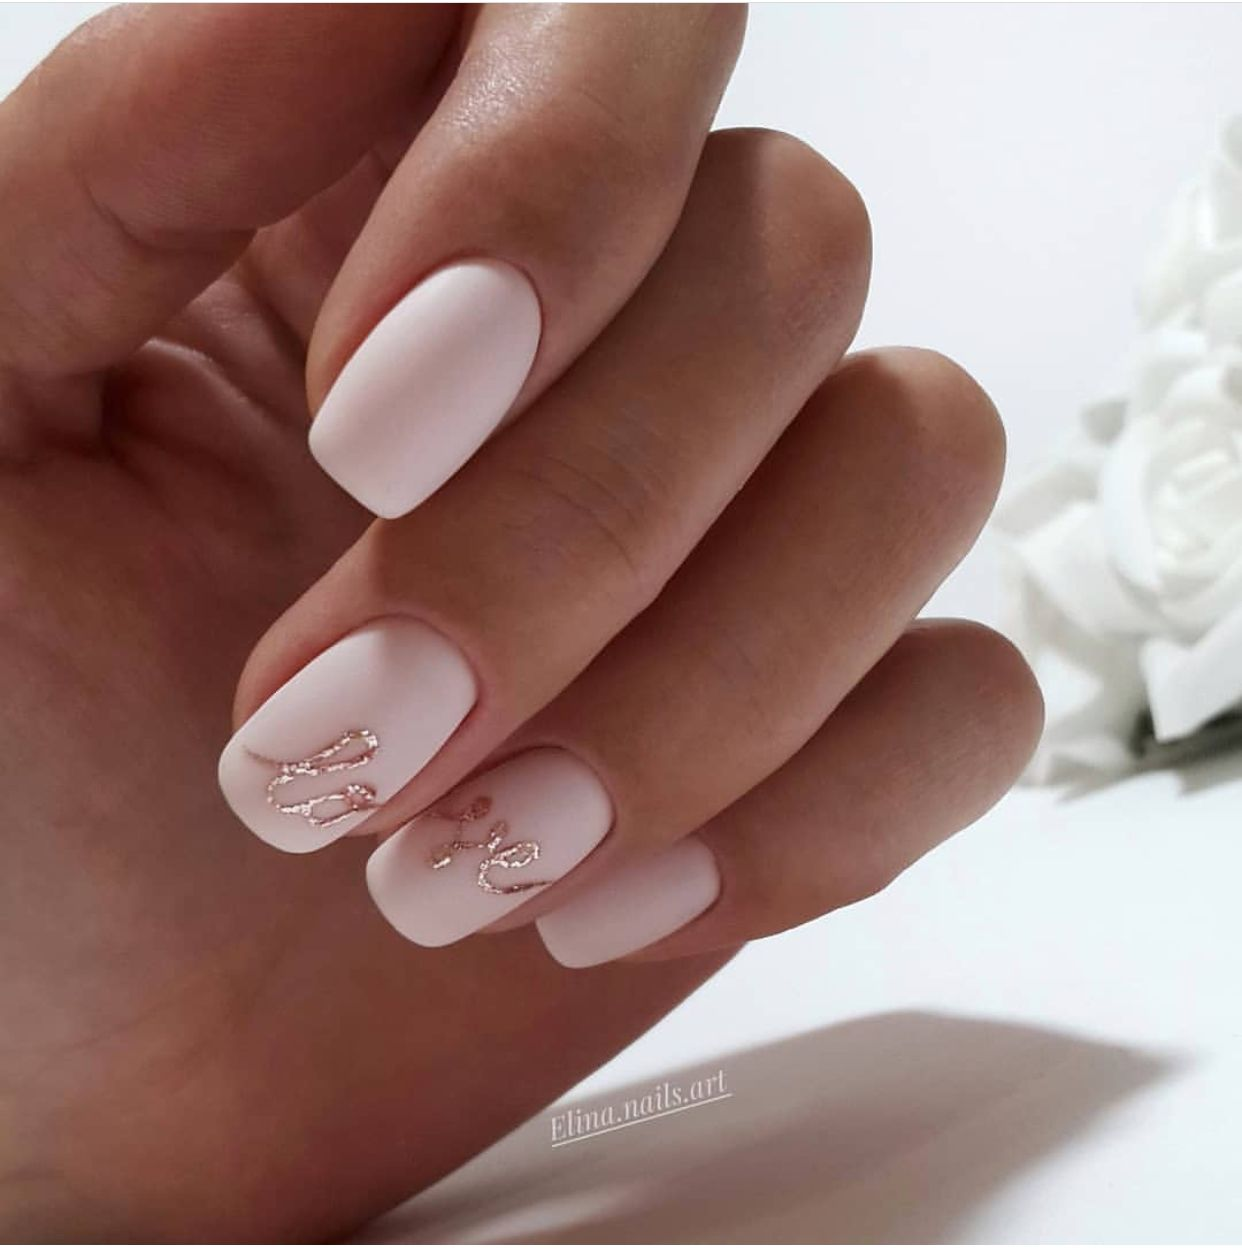 ♡ PRETTY NAIL ART @elina.nails.art #PrettiestManicures #BestManicures #mzmanerzbestmanicures #MzManerz |Be Inspirational ❥|Mz. Manerz: Being well dressed is a beautiful form of confidence, happiness & politeness